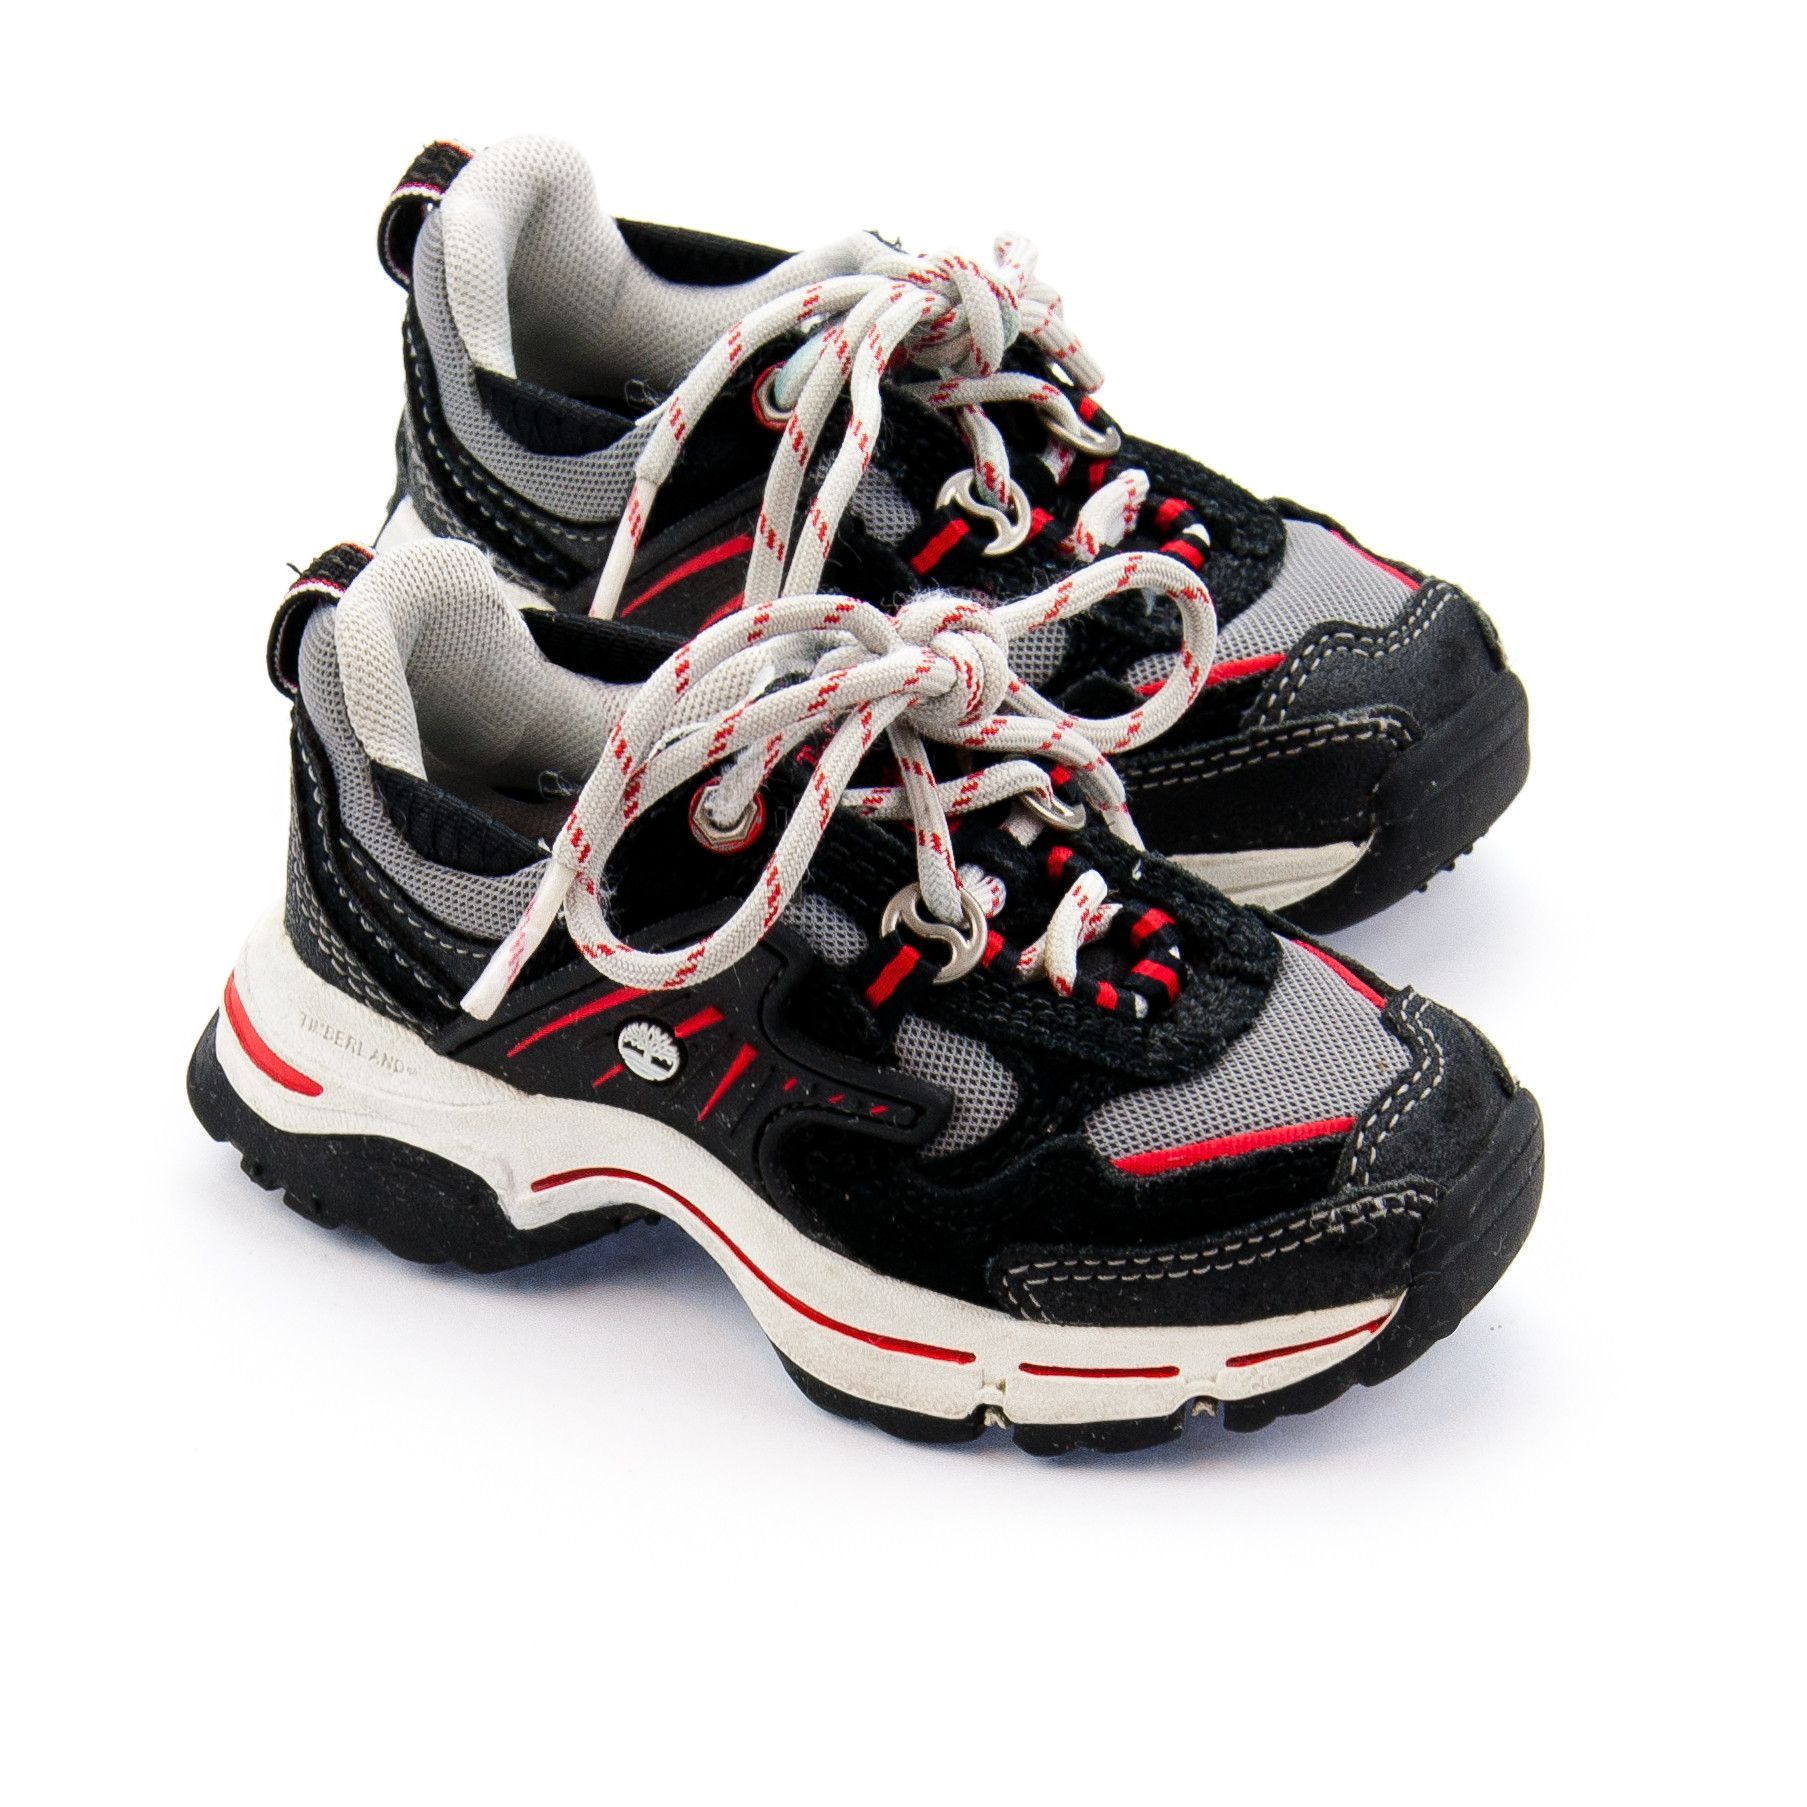 Size 6.5 Boys Athletic Sneakers